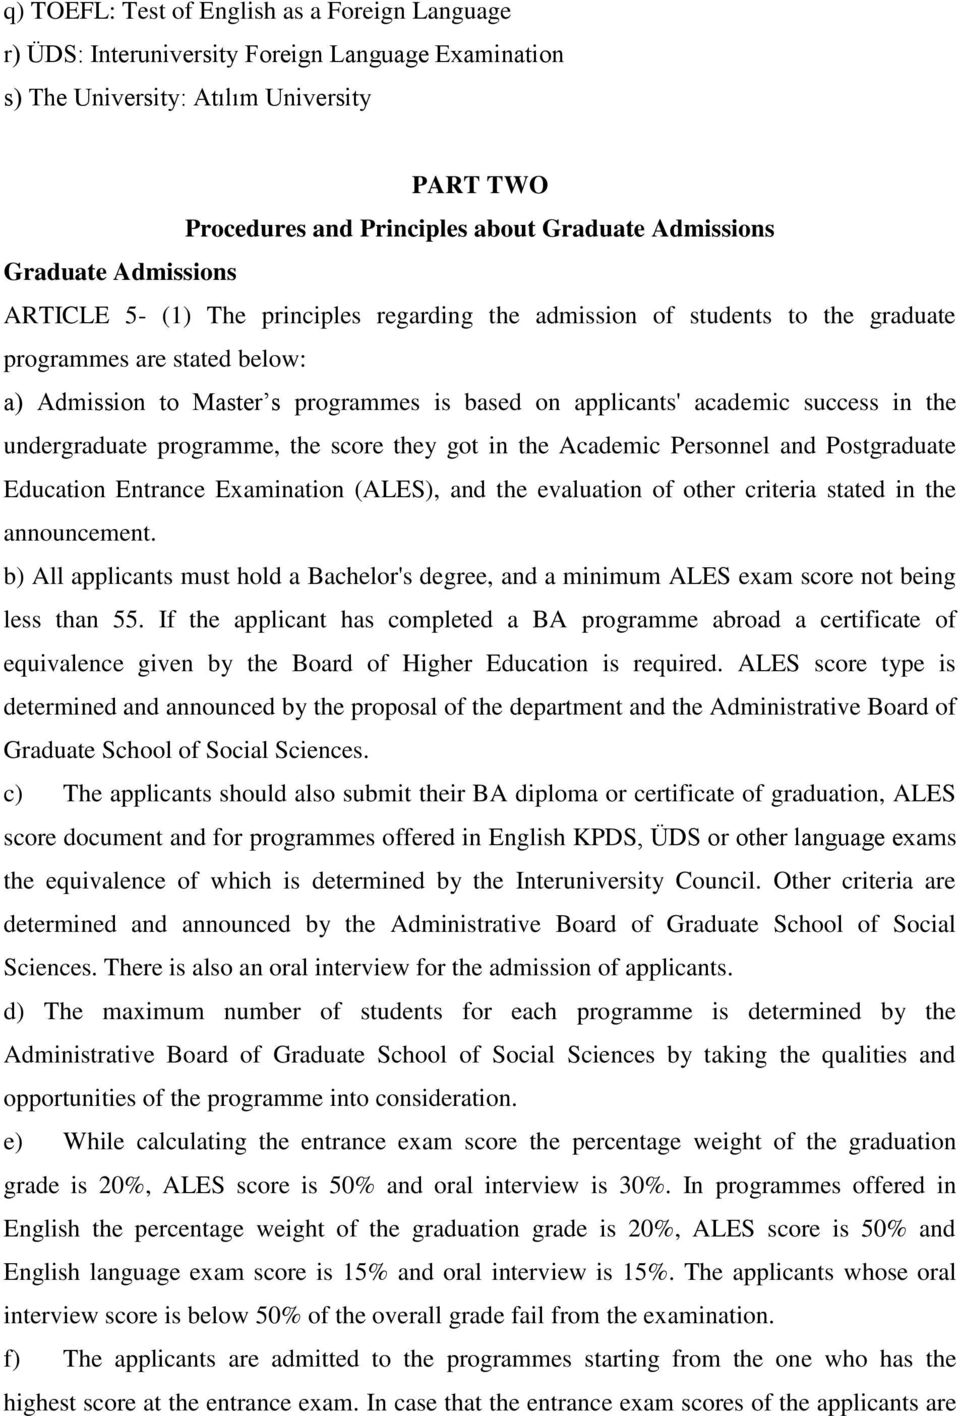 success in the undergraduate programme, the score they got in the Academic Personnel and Postgraduate Education Entrance Examination (ALES), and the evaluation of other criteria stated in the